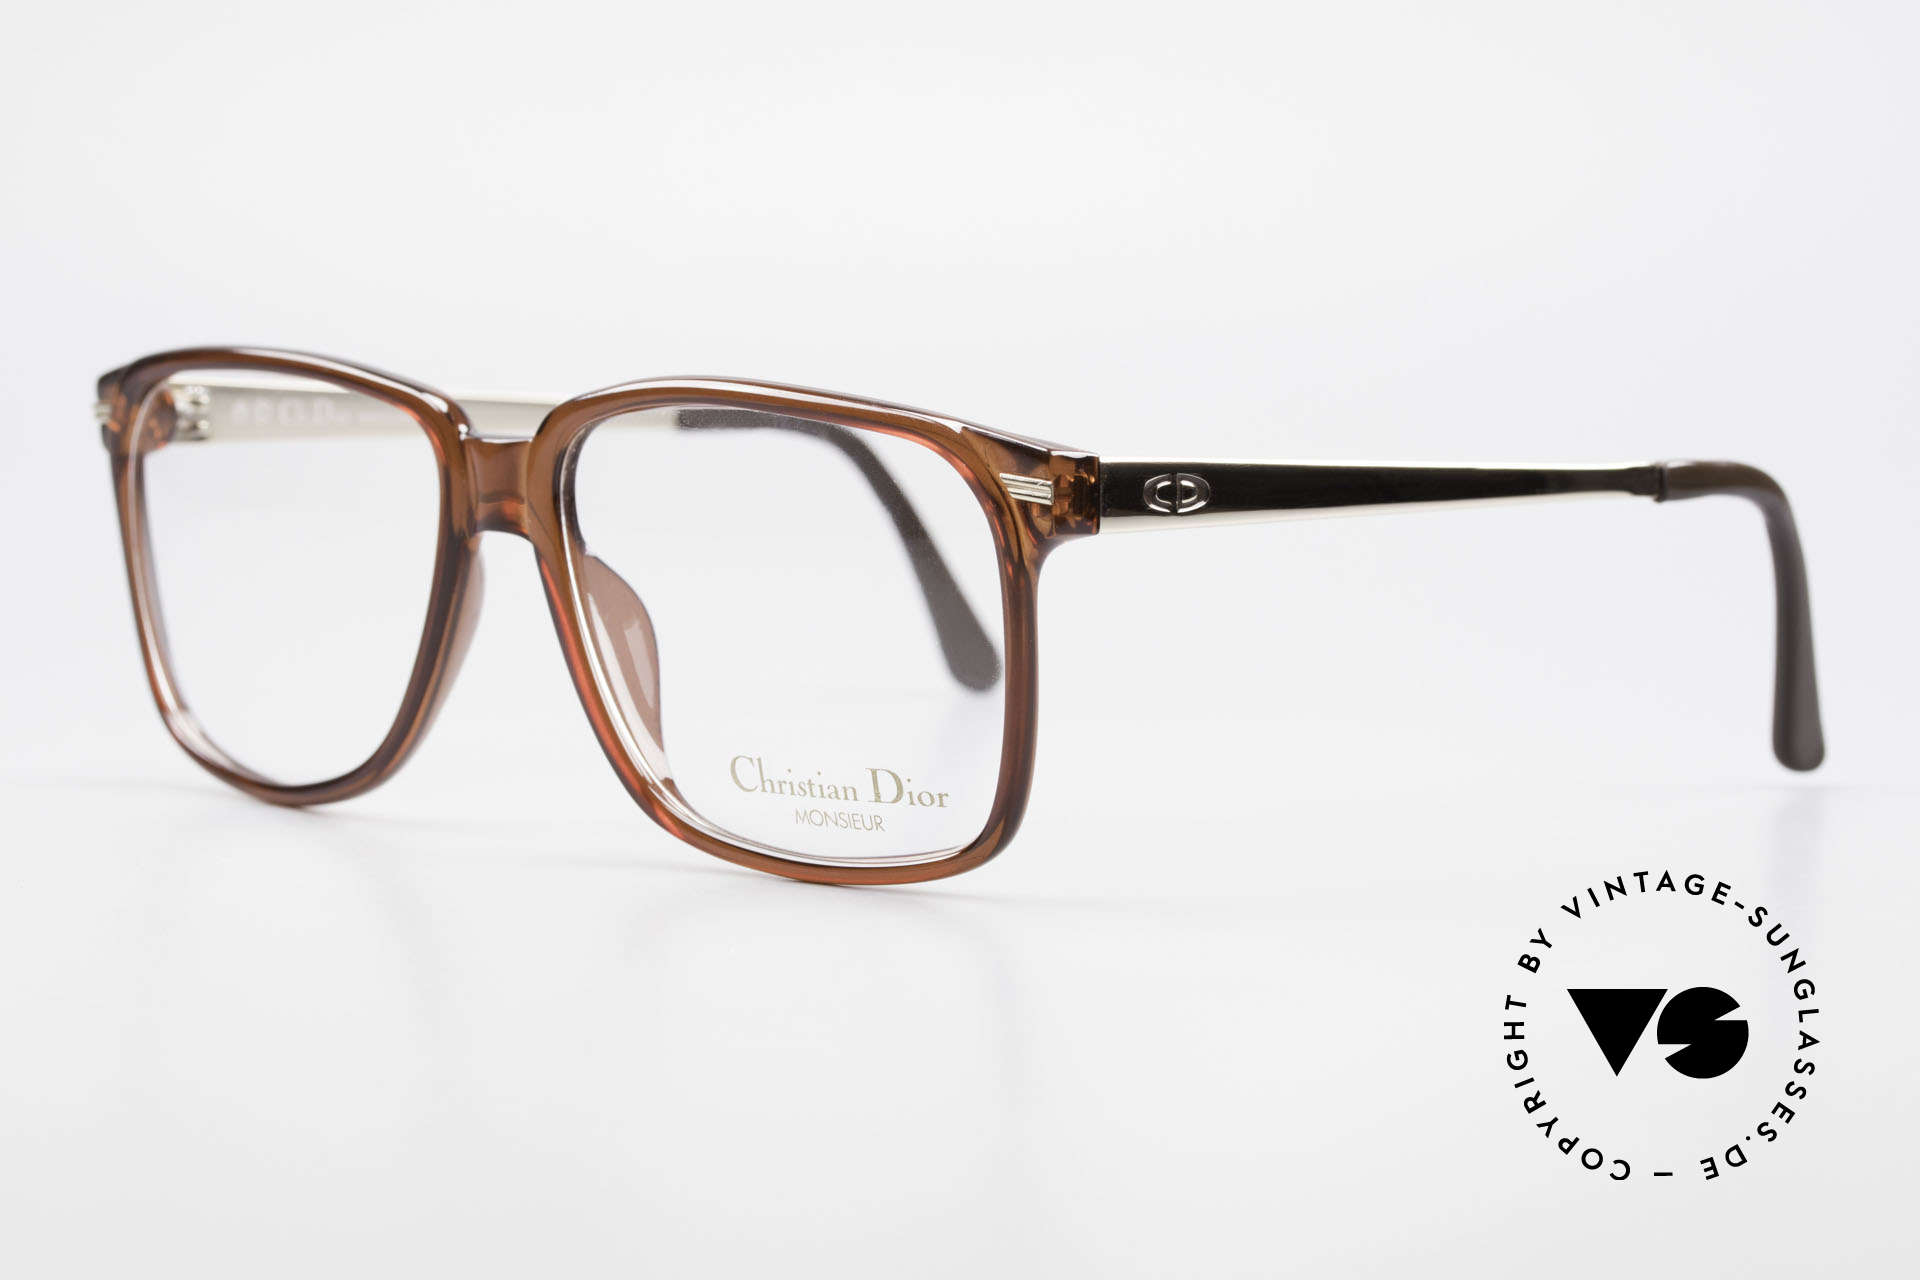 Christian Dior 2460 80's Frame Monsieur Series, synthetic Optyl frame and gold-plated temples, Made for Men